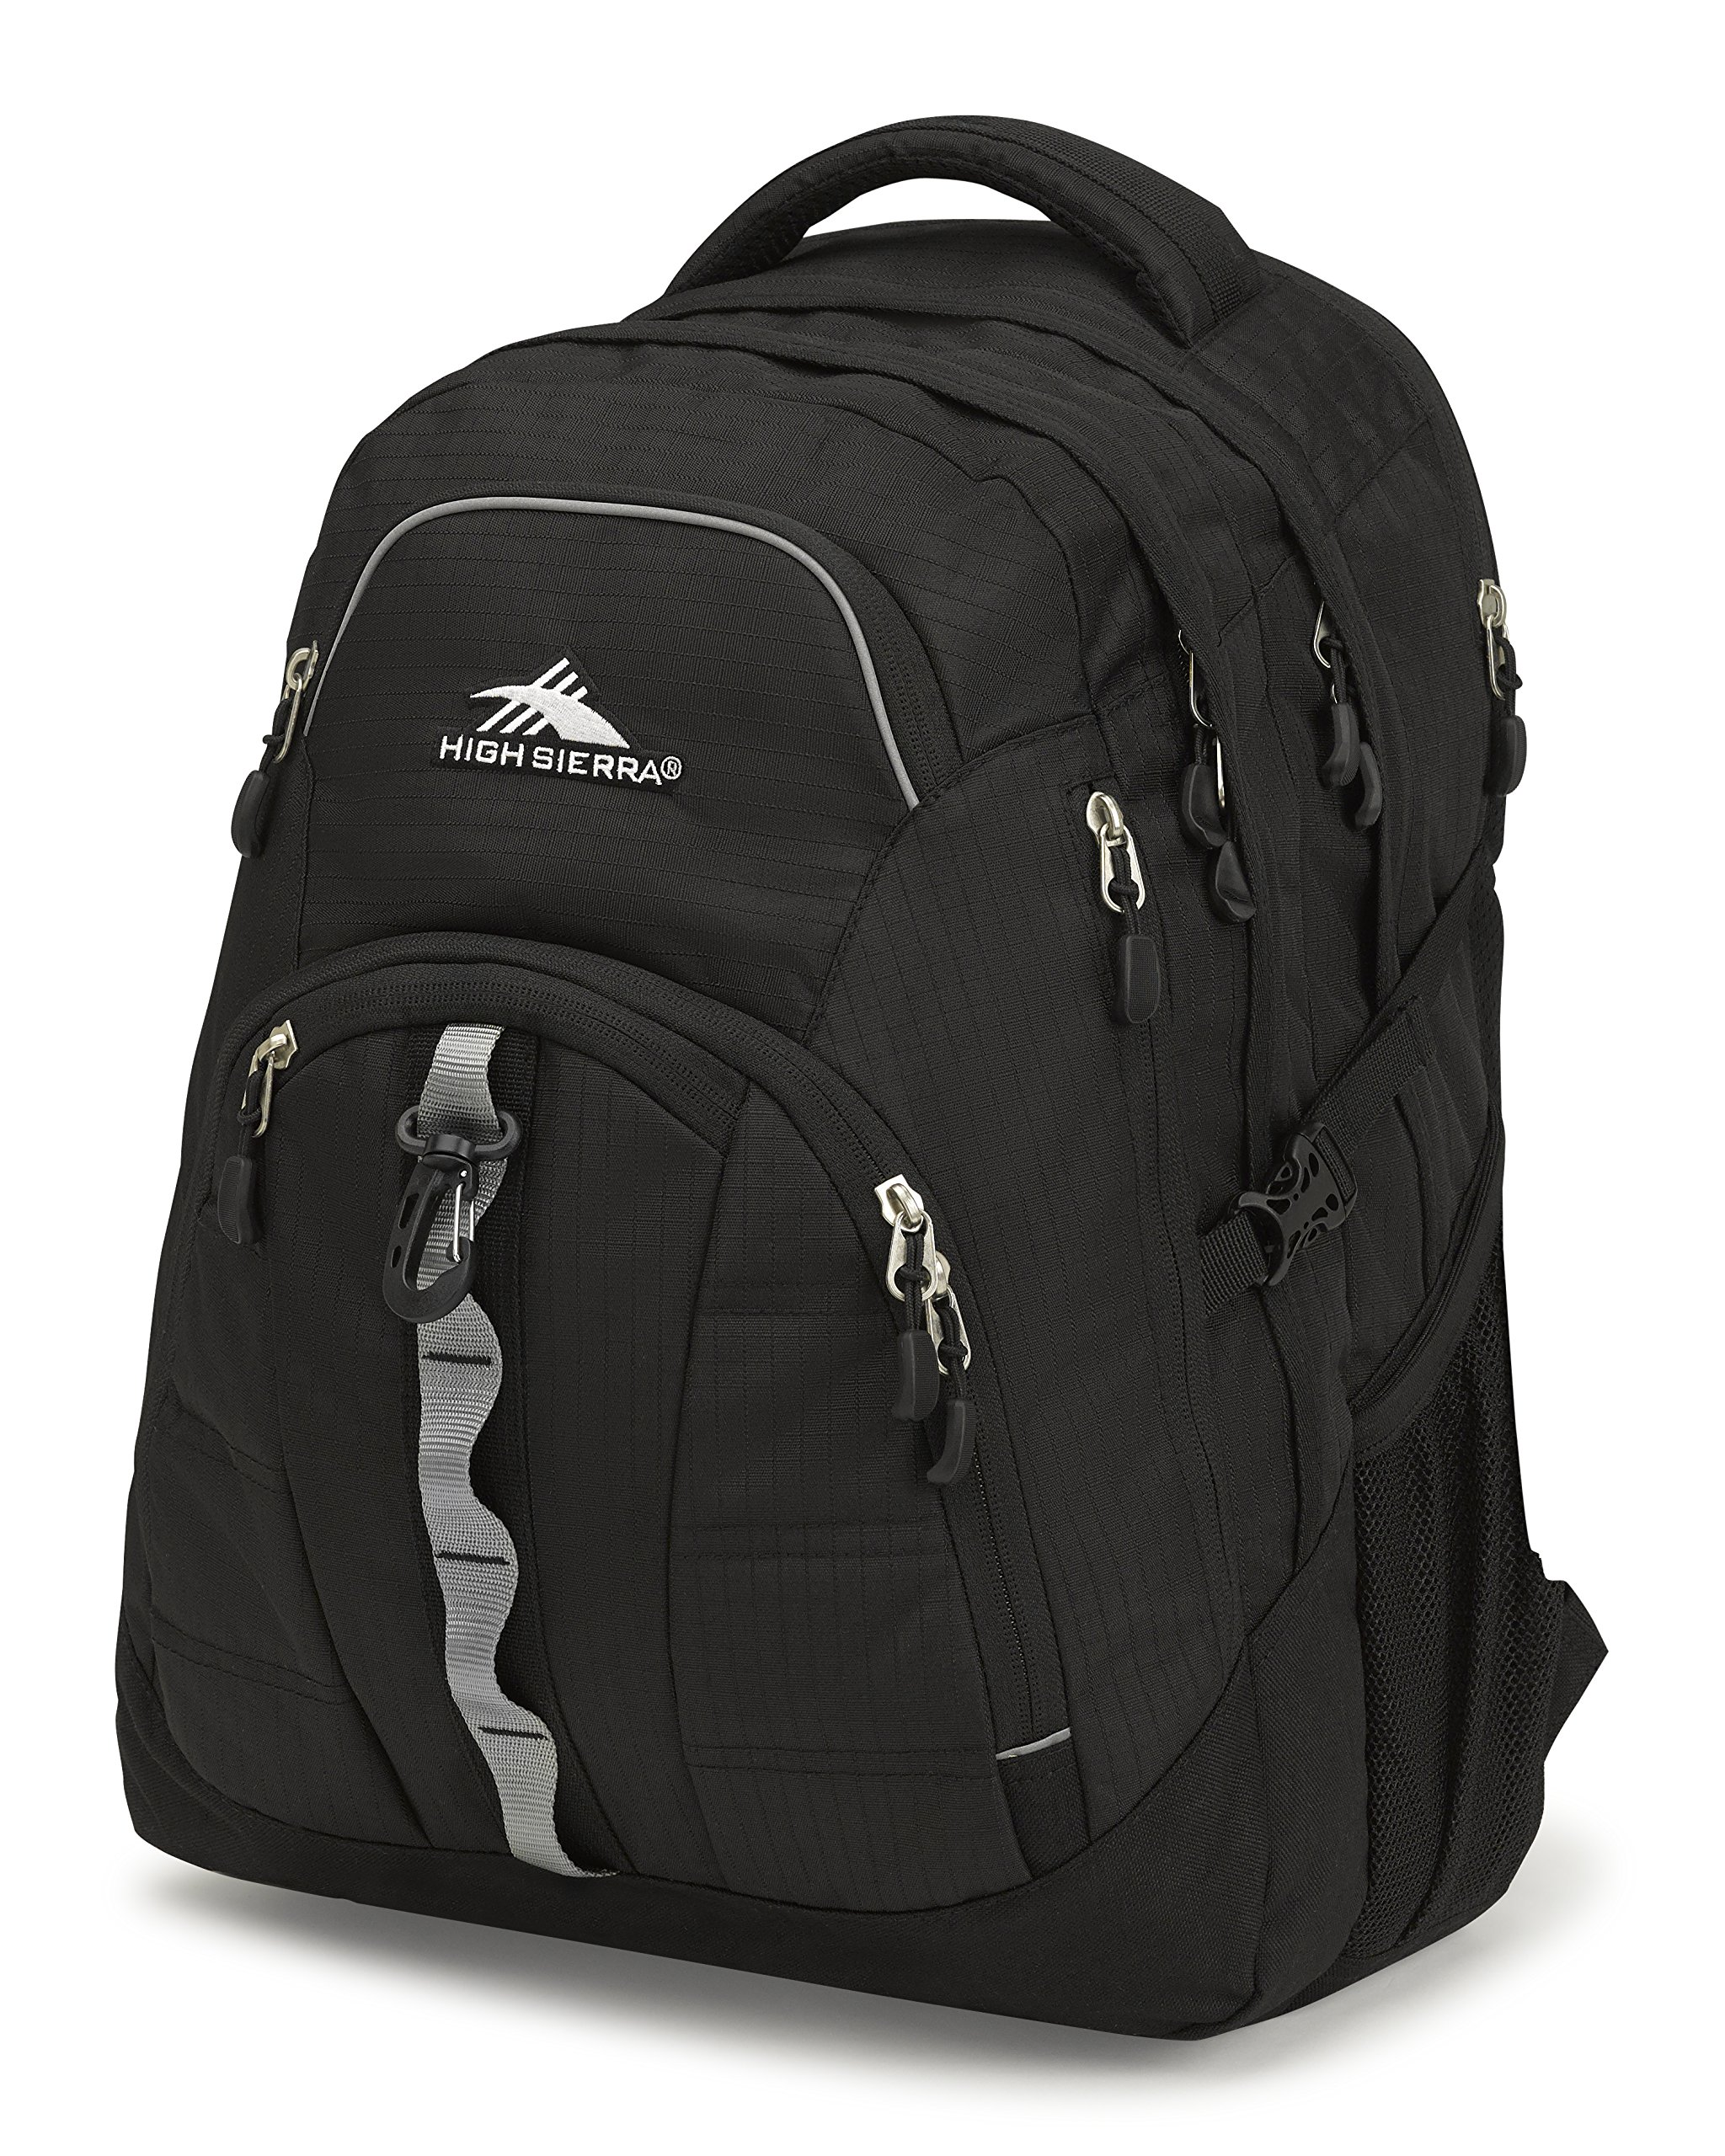 High Sierra Access II Laptop Backpack, Black